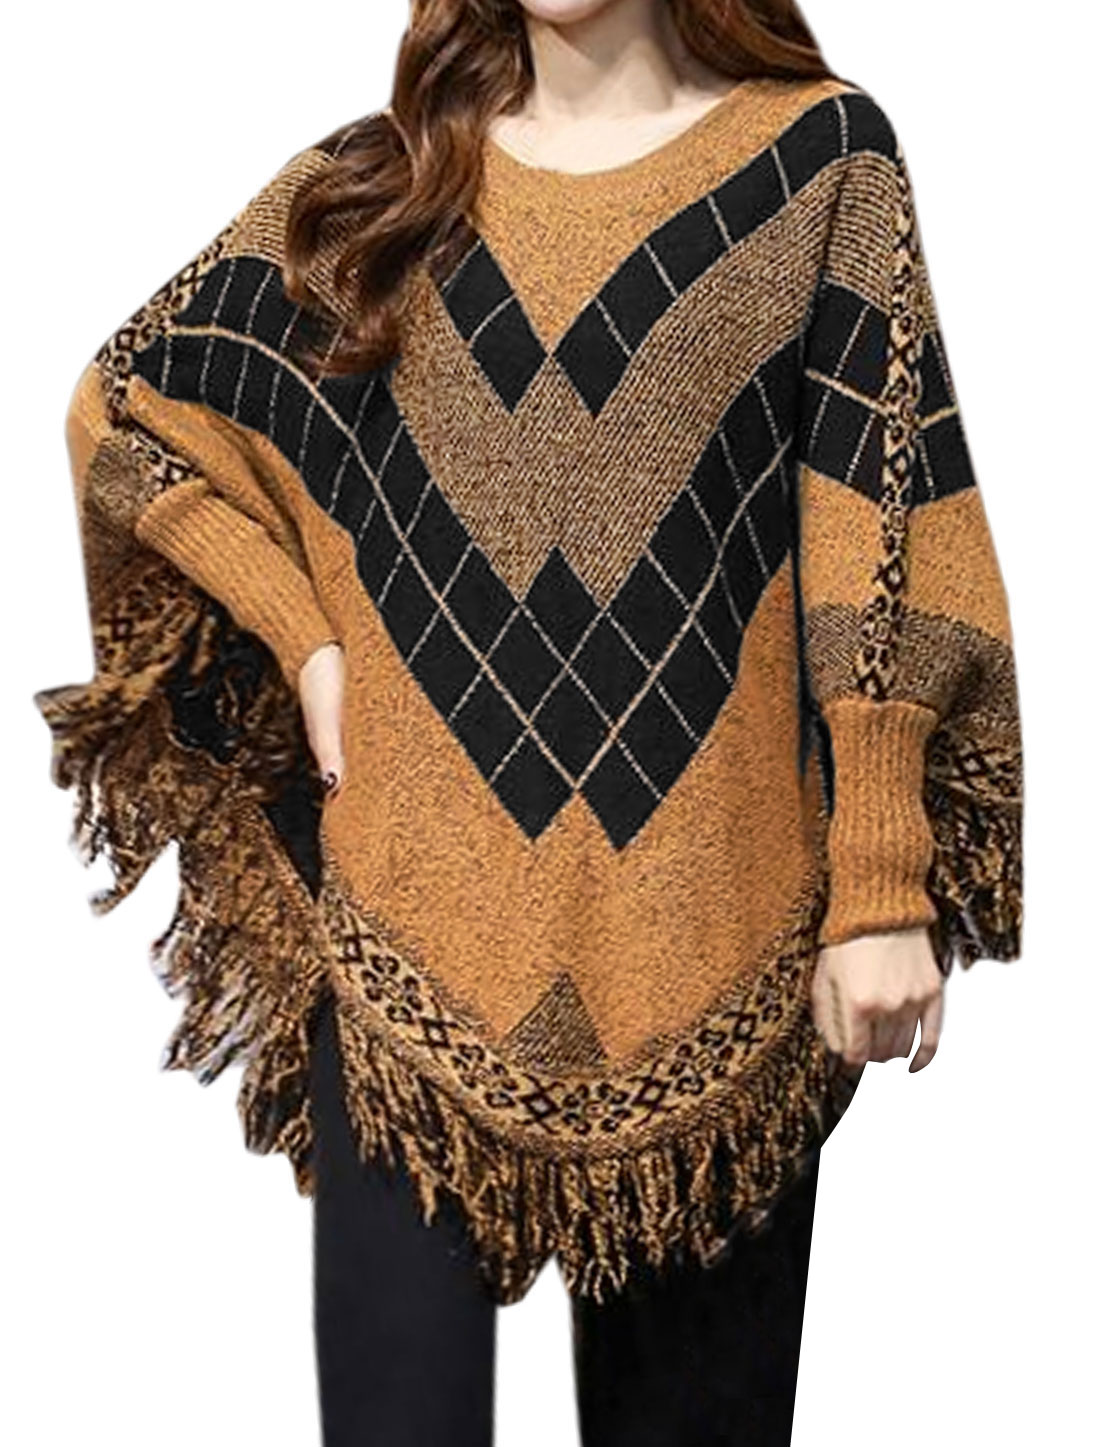 Women Long Batwing Sleeve Argyle Tassels Knit Shirts Blouse Khaki M